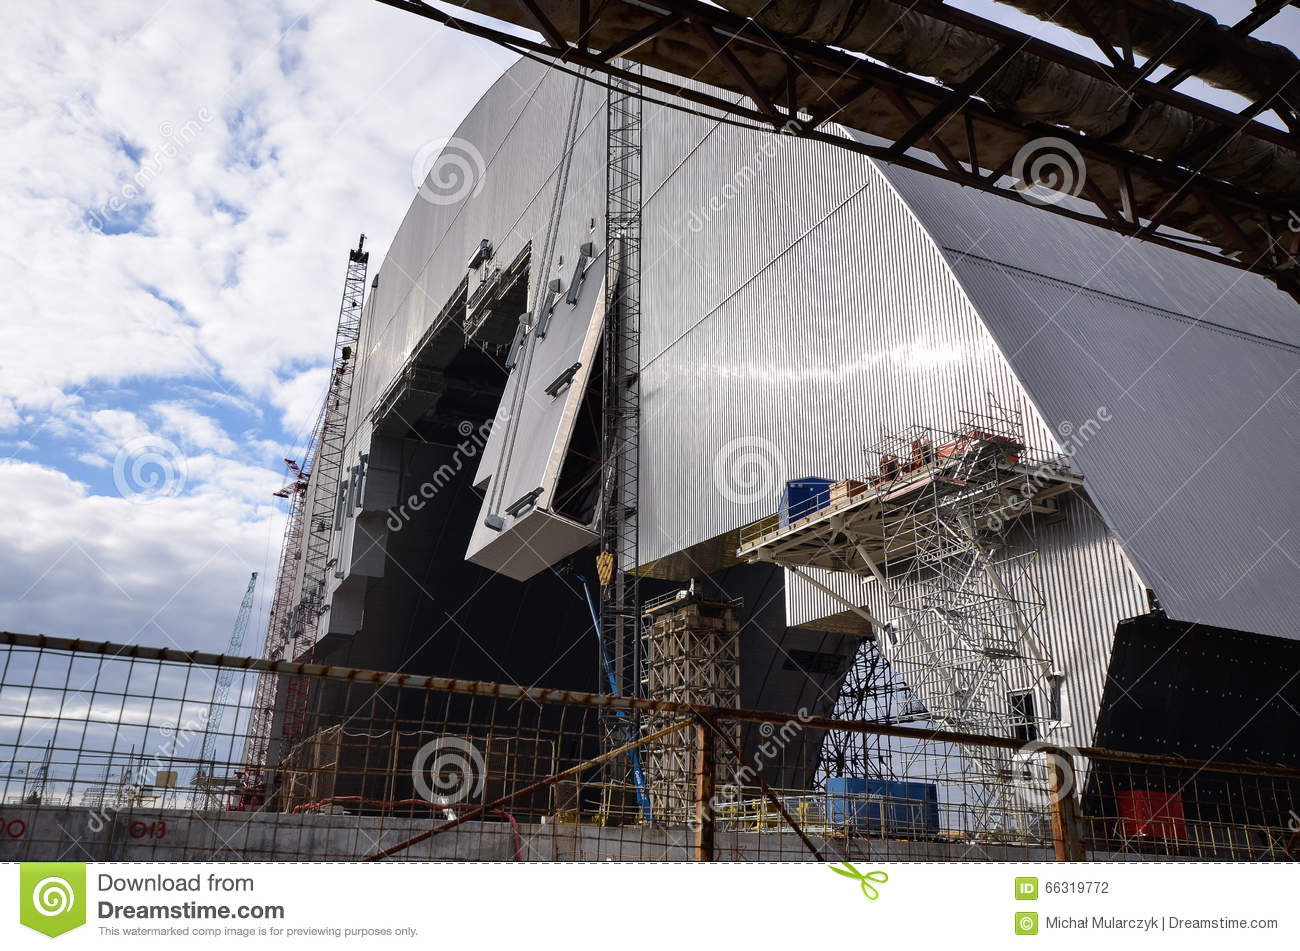 The Arch (Chernobyl New Safe Confinement) Stock Photo